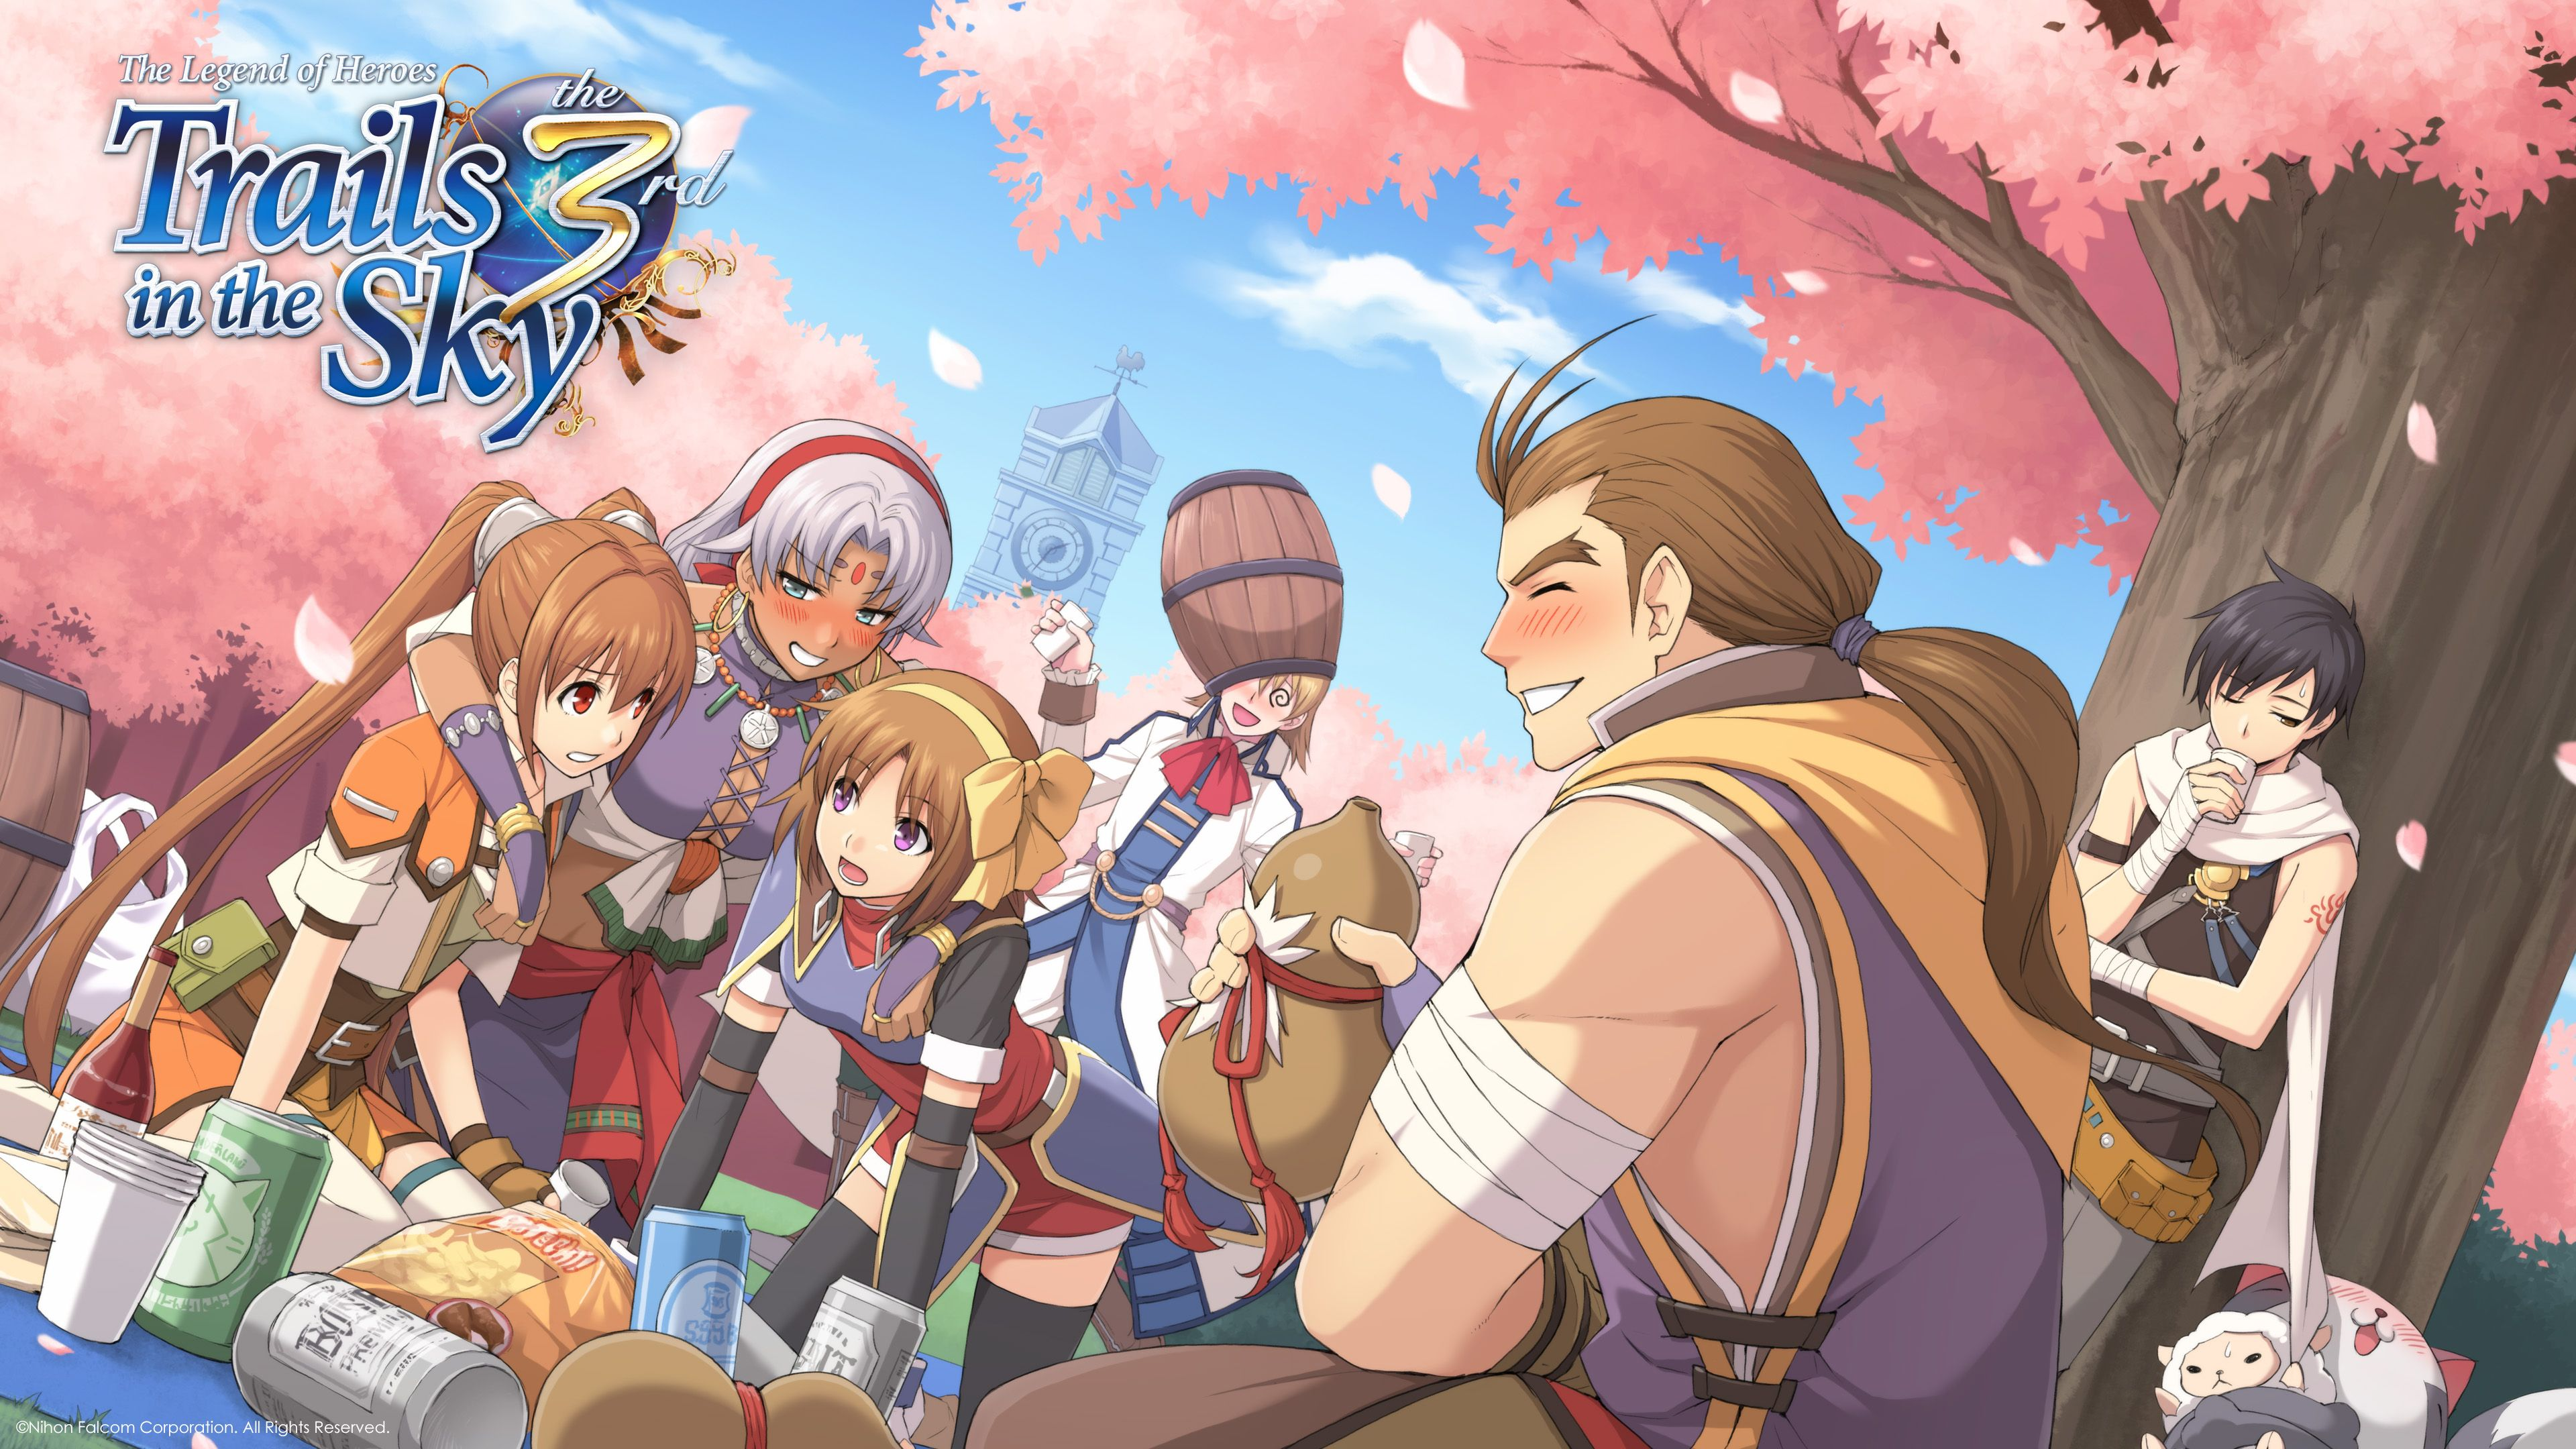 The Legend Of Heroes Wallpapers Top Free The Legend Of Heroes